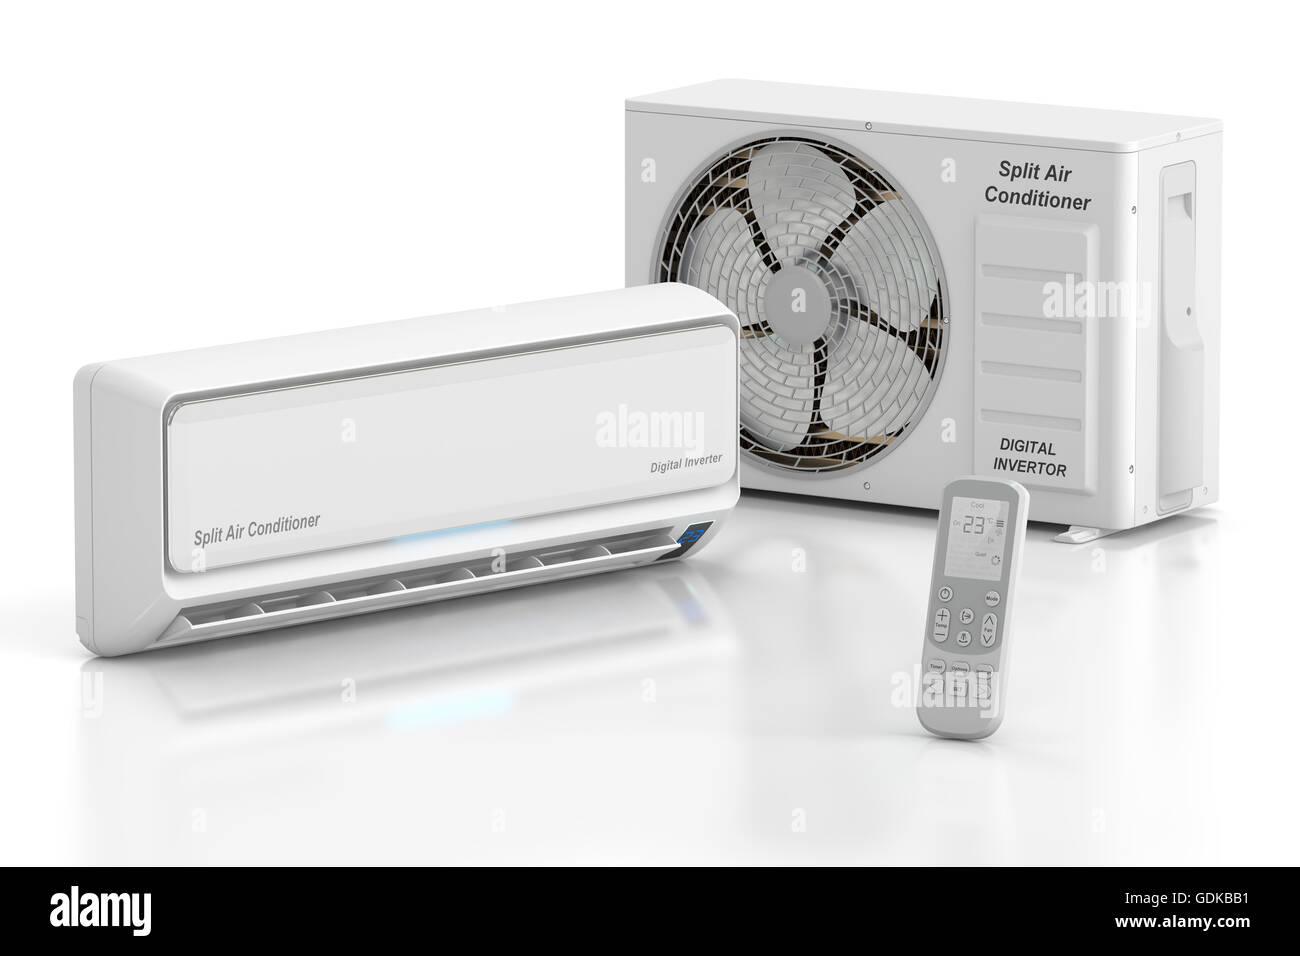 Modern Air Conditioner System With Unit And Remote Control, 3D Rendering  Isolated On White Background